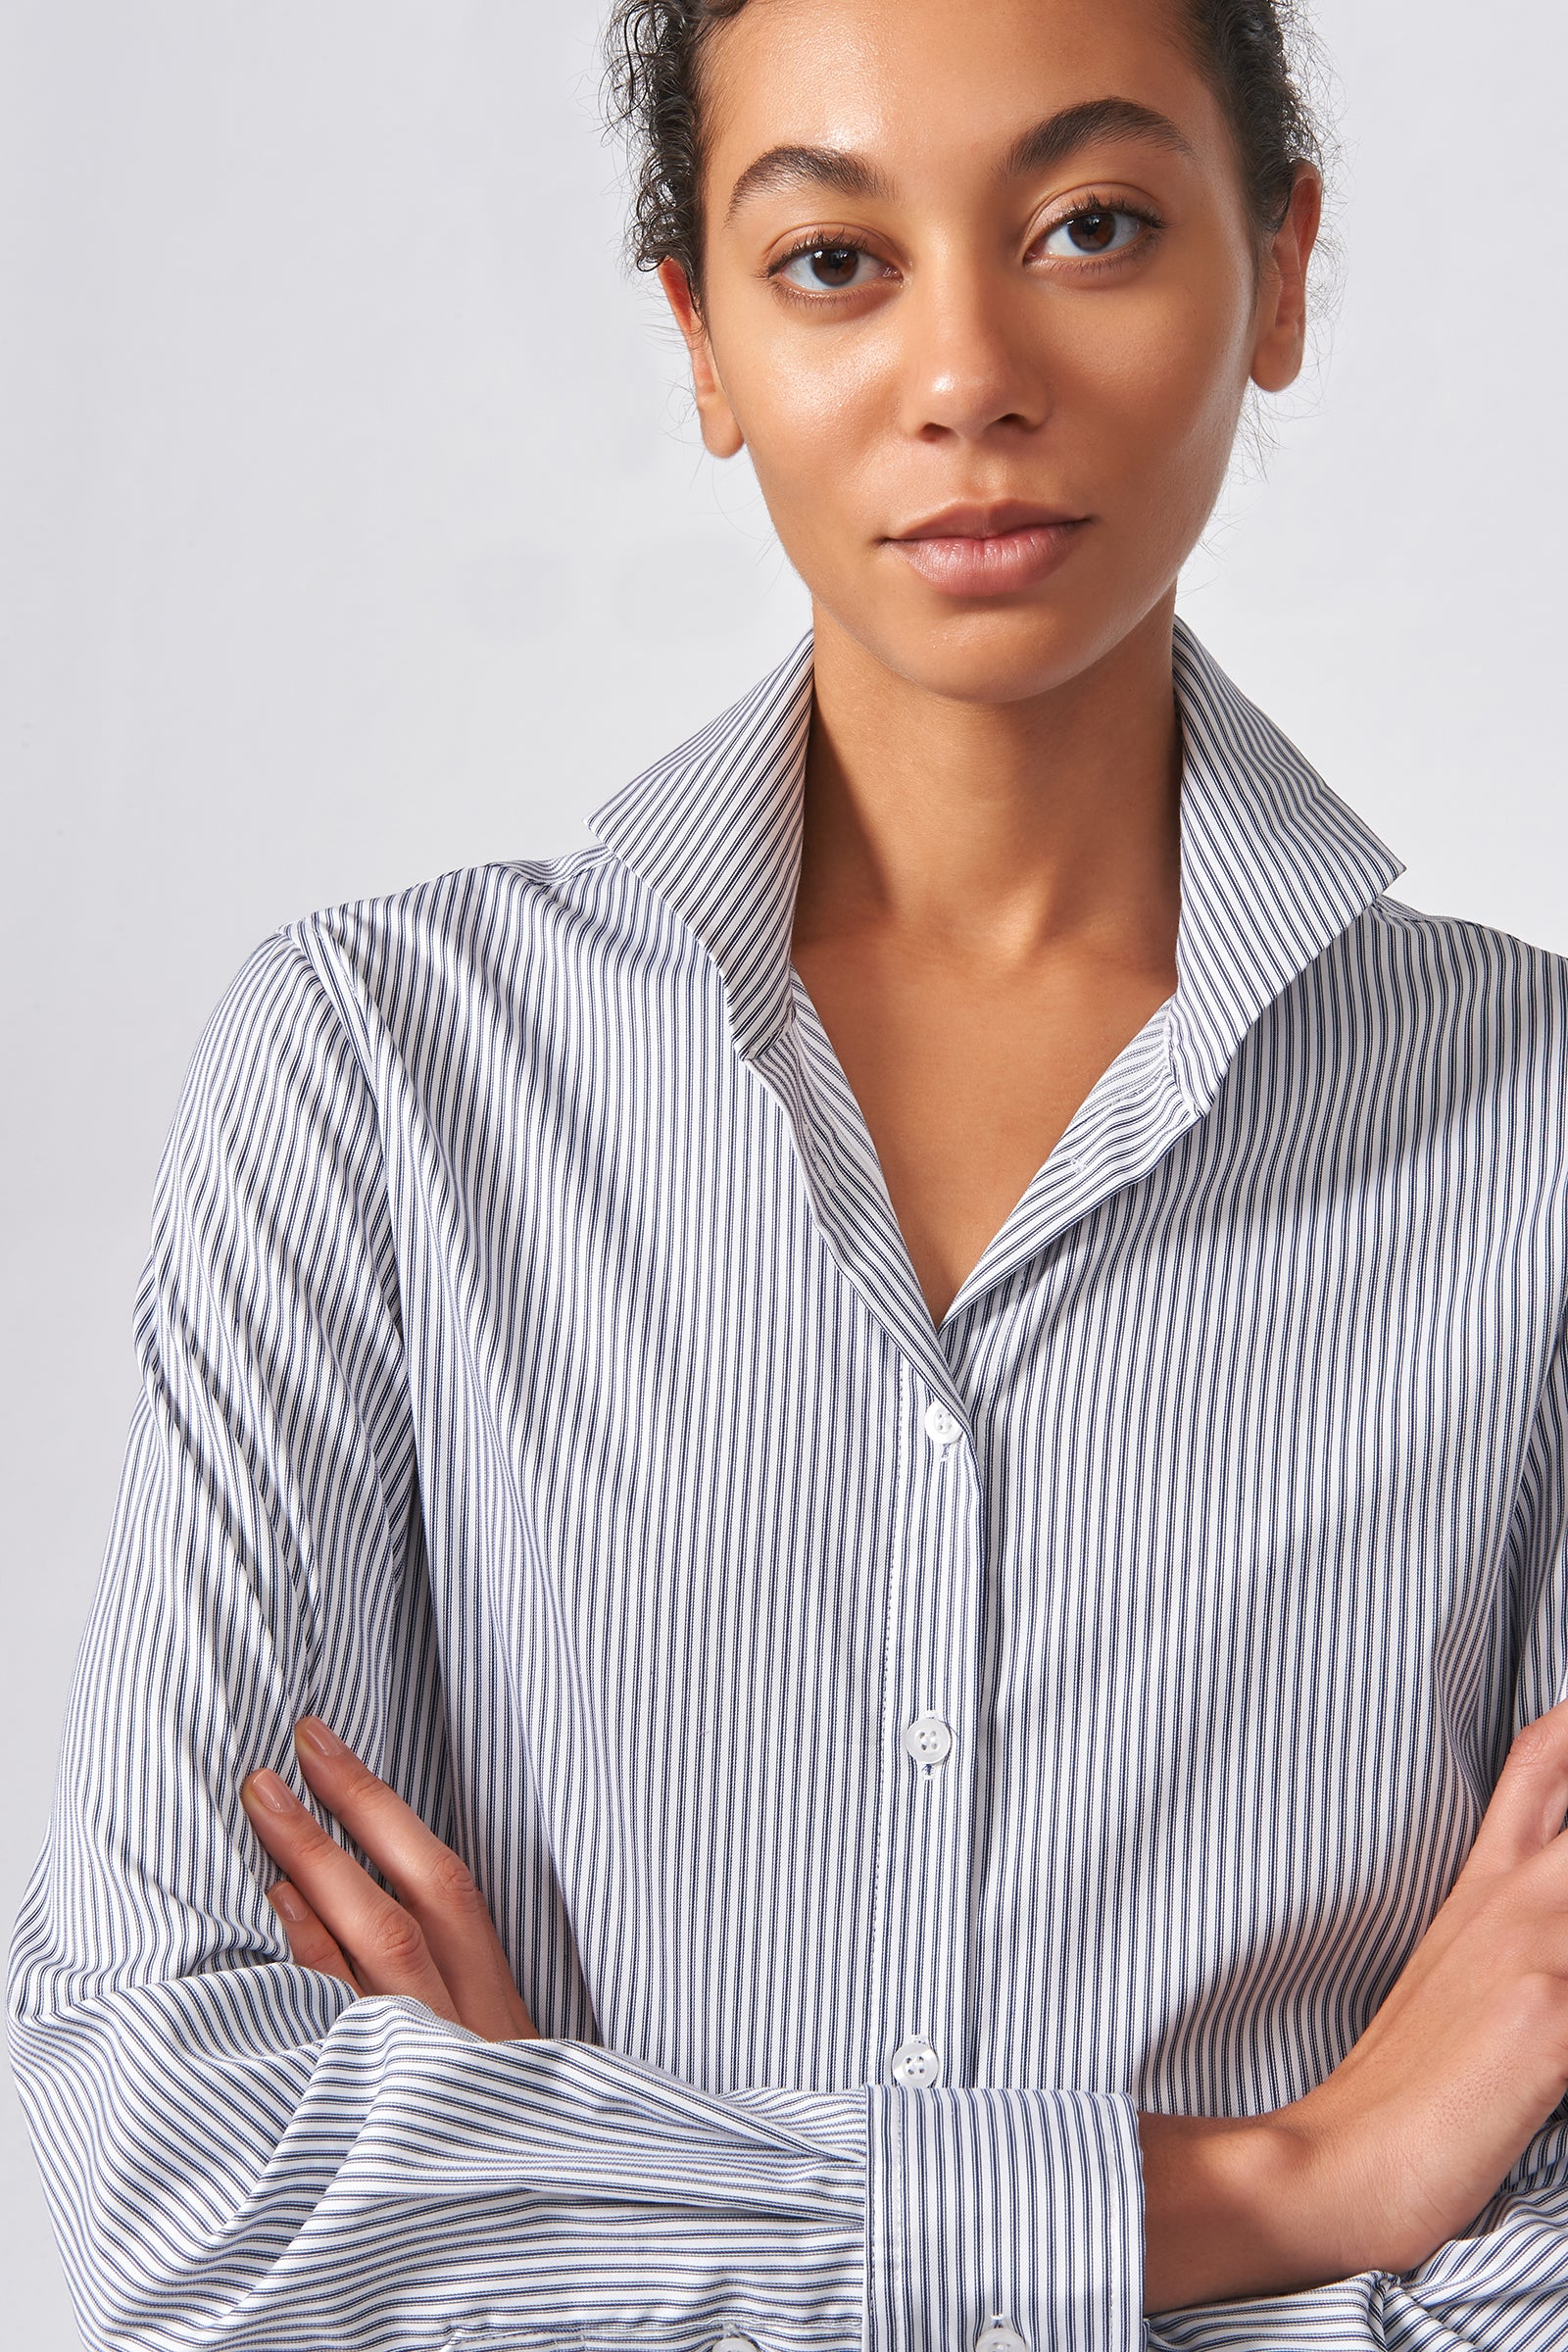 Kal Rieman Ginna Box Pleat Tailored Shirt in Navy Stripe Stretch on Model Front Close-up View